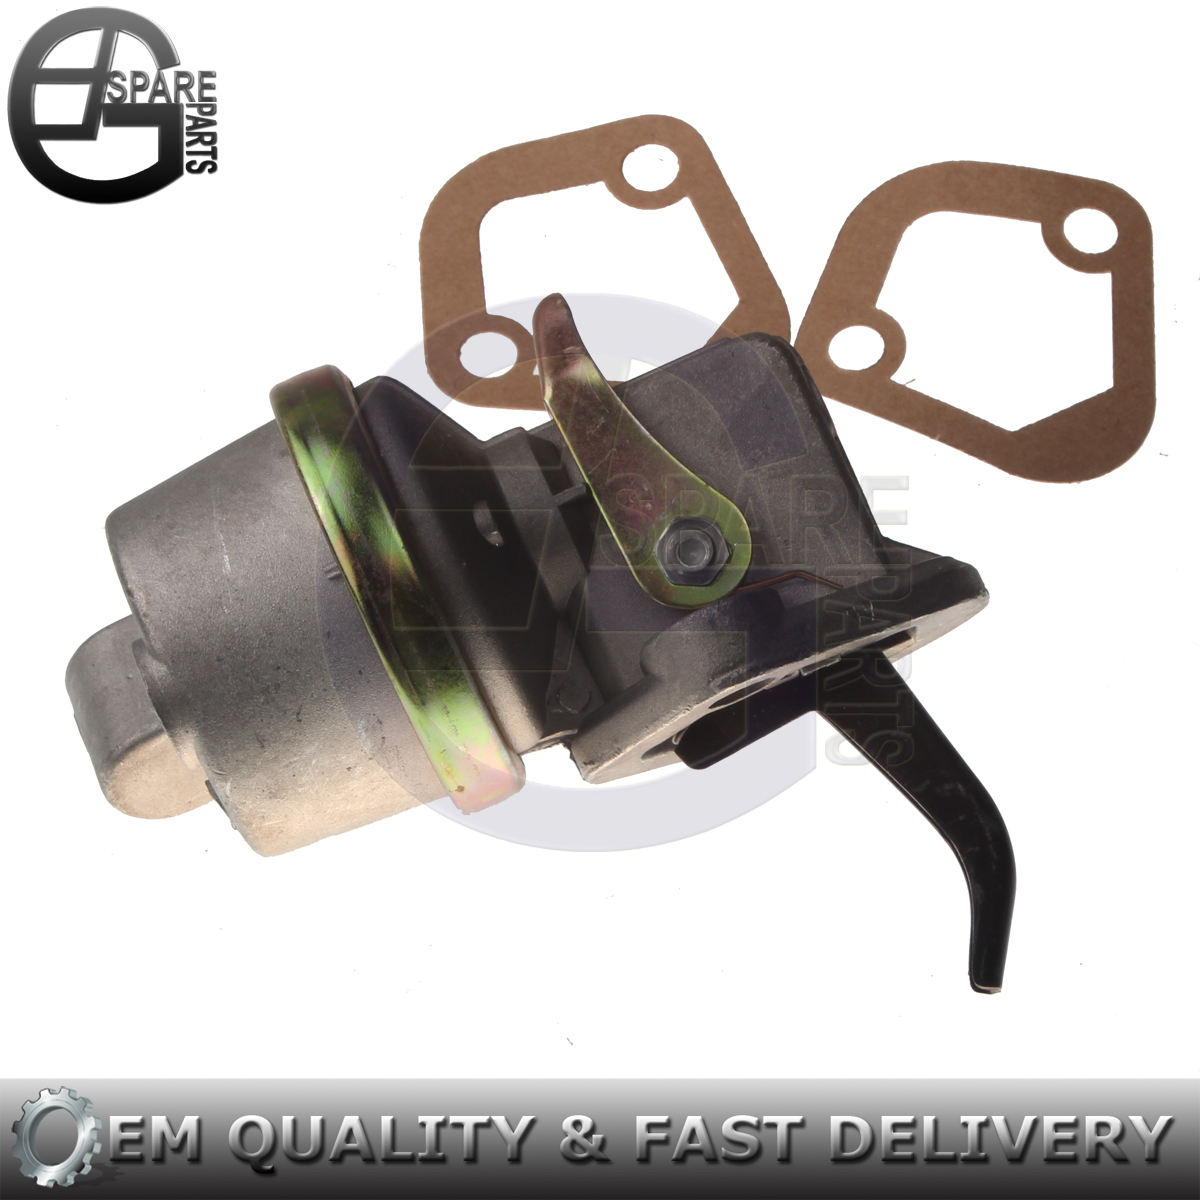 New Fuel Transfer Pump 4983584 for Cummins 4B 4BT 4BTA 6B 6BT 6BTA